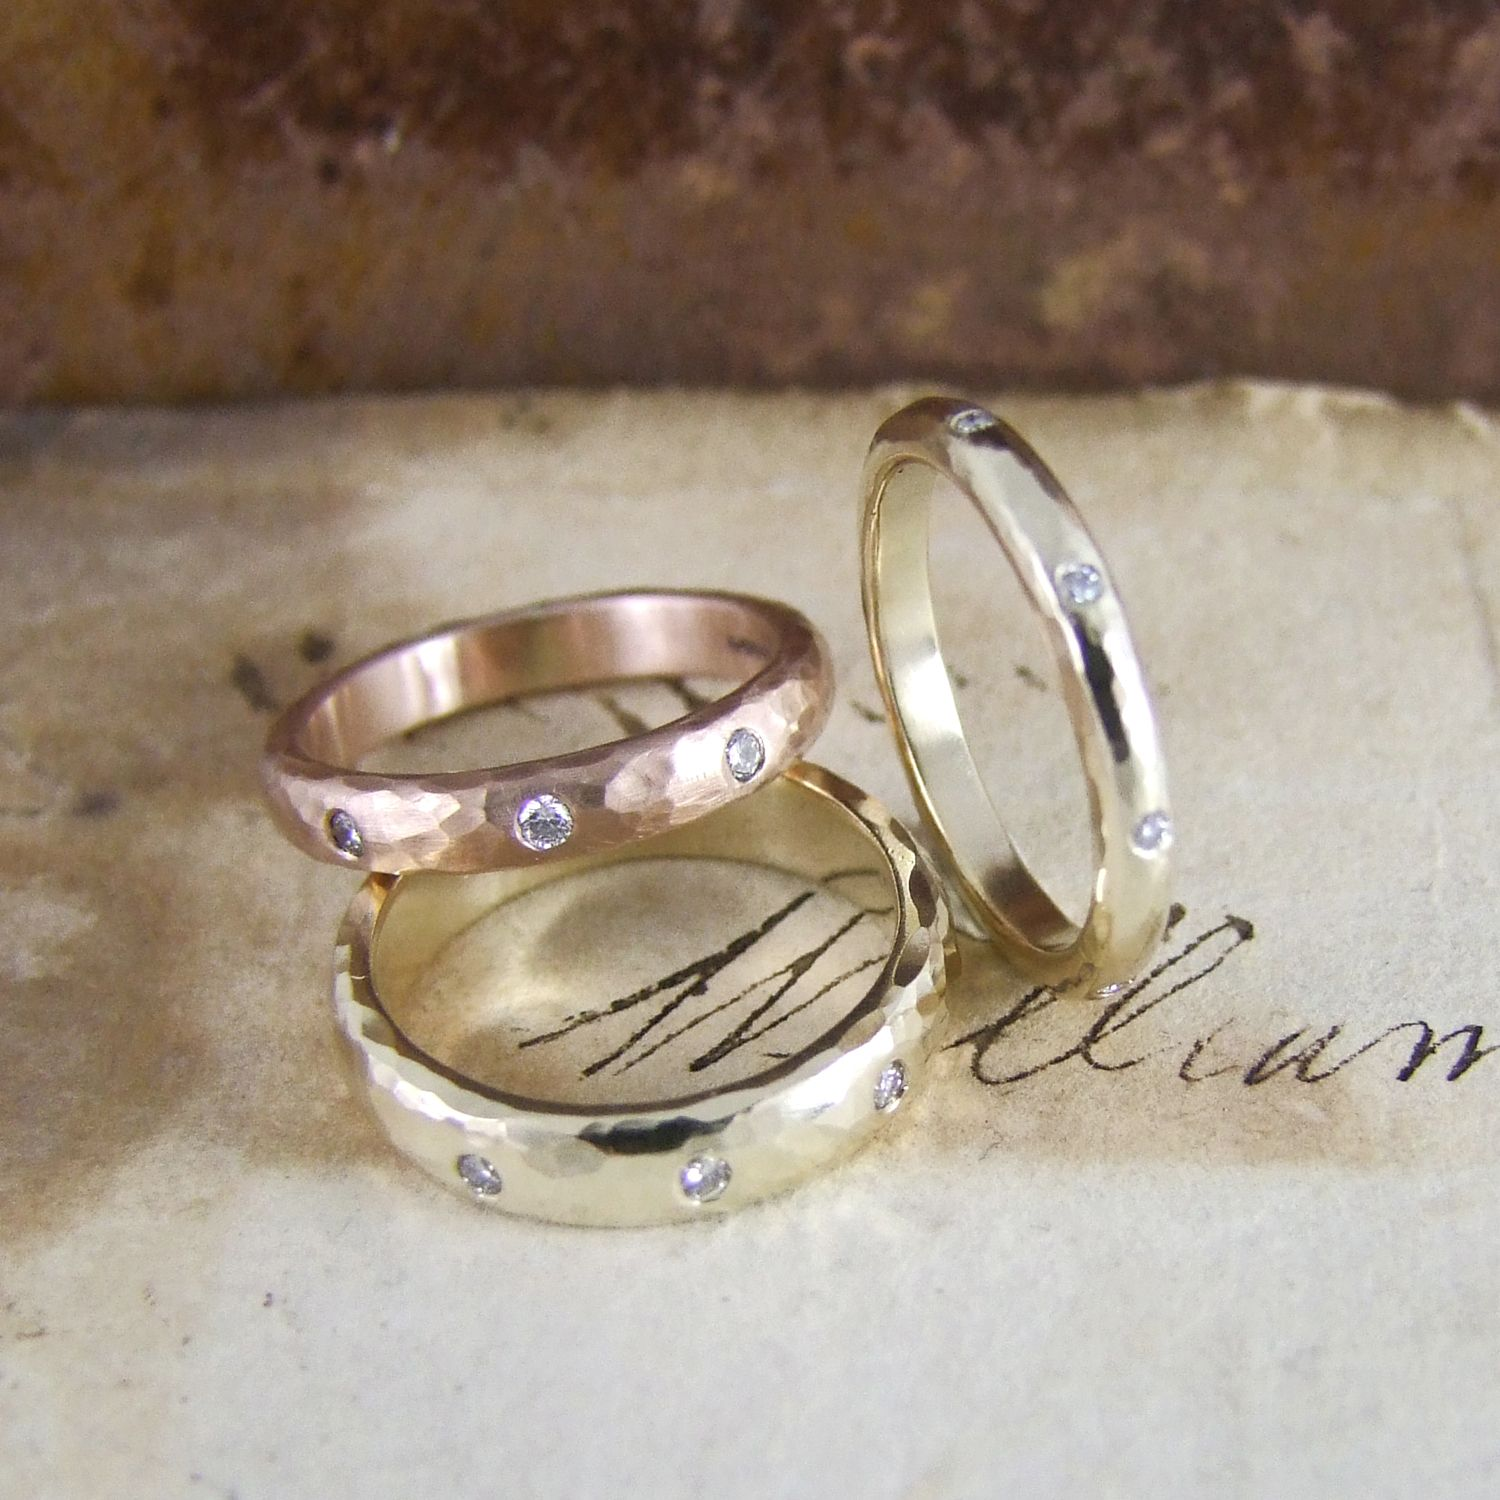 Beaten Wedding Rings by Alexis Dove in #rosegold #yellowgold #hammeredgold set with white diamonds